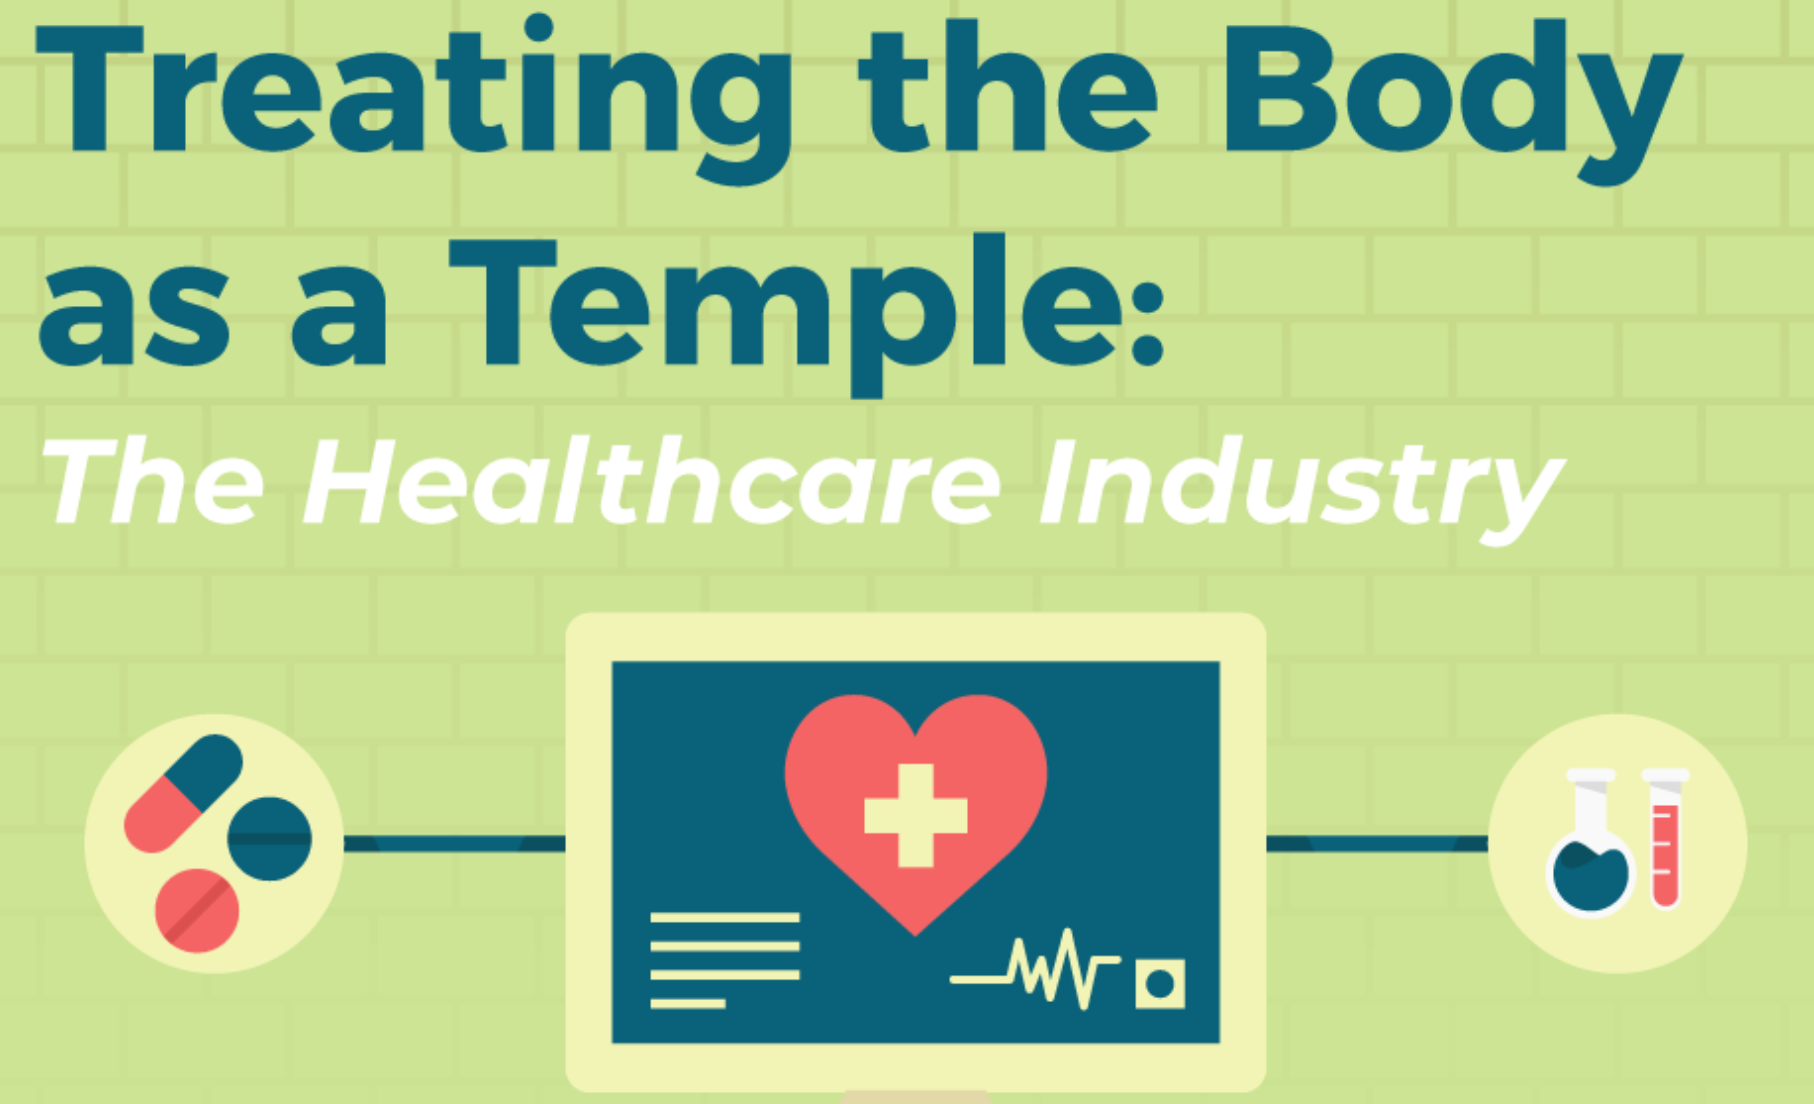 Treating the Body as a Temple; graphic courtesy of author.